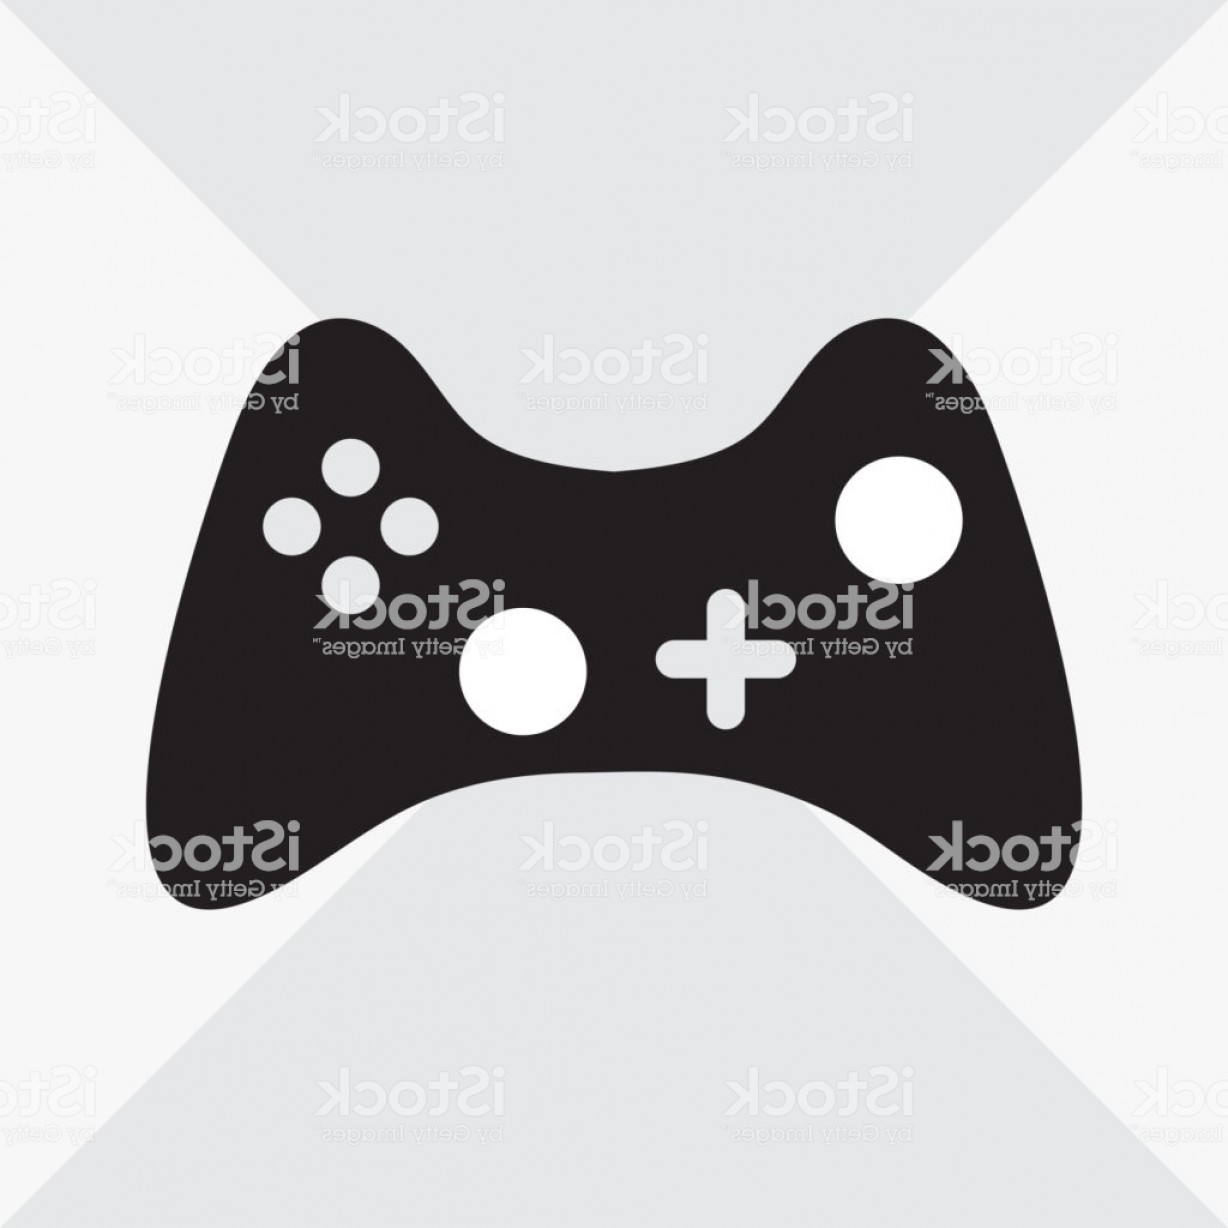 Xbox Game Controller Vector: Black And White Joystick For Computer Games Flat Icon Vector Illustration Gm